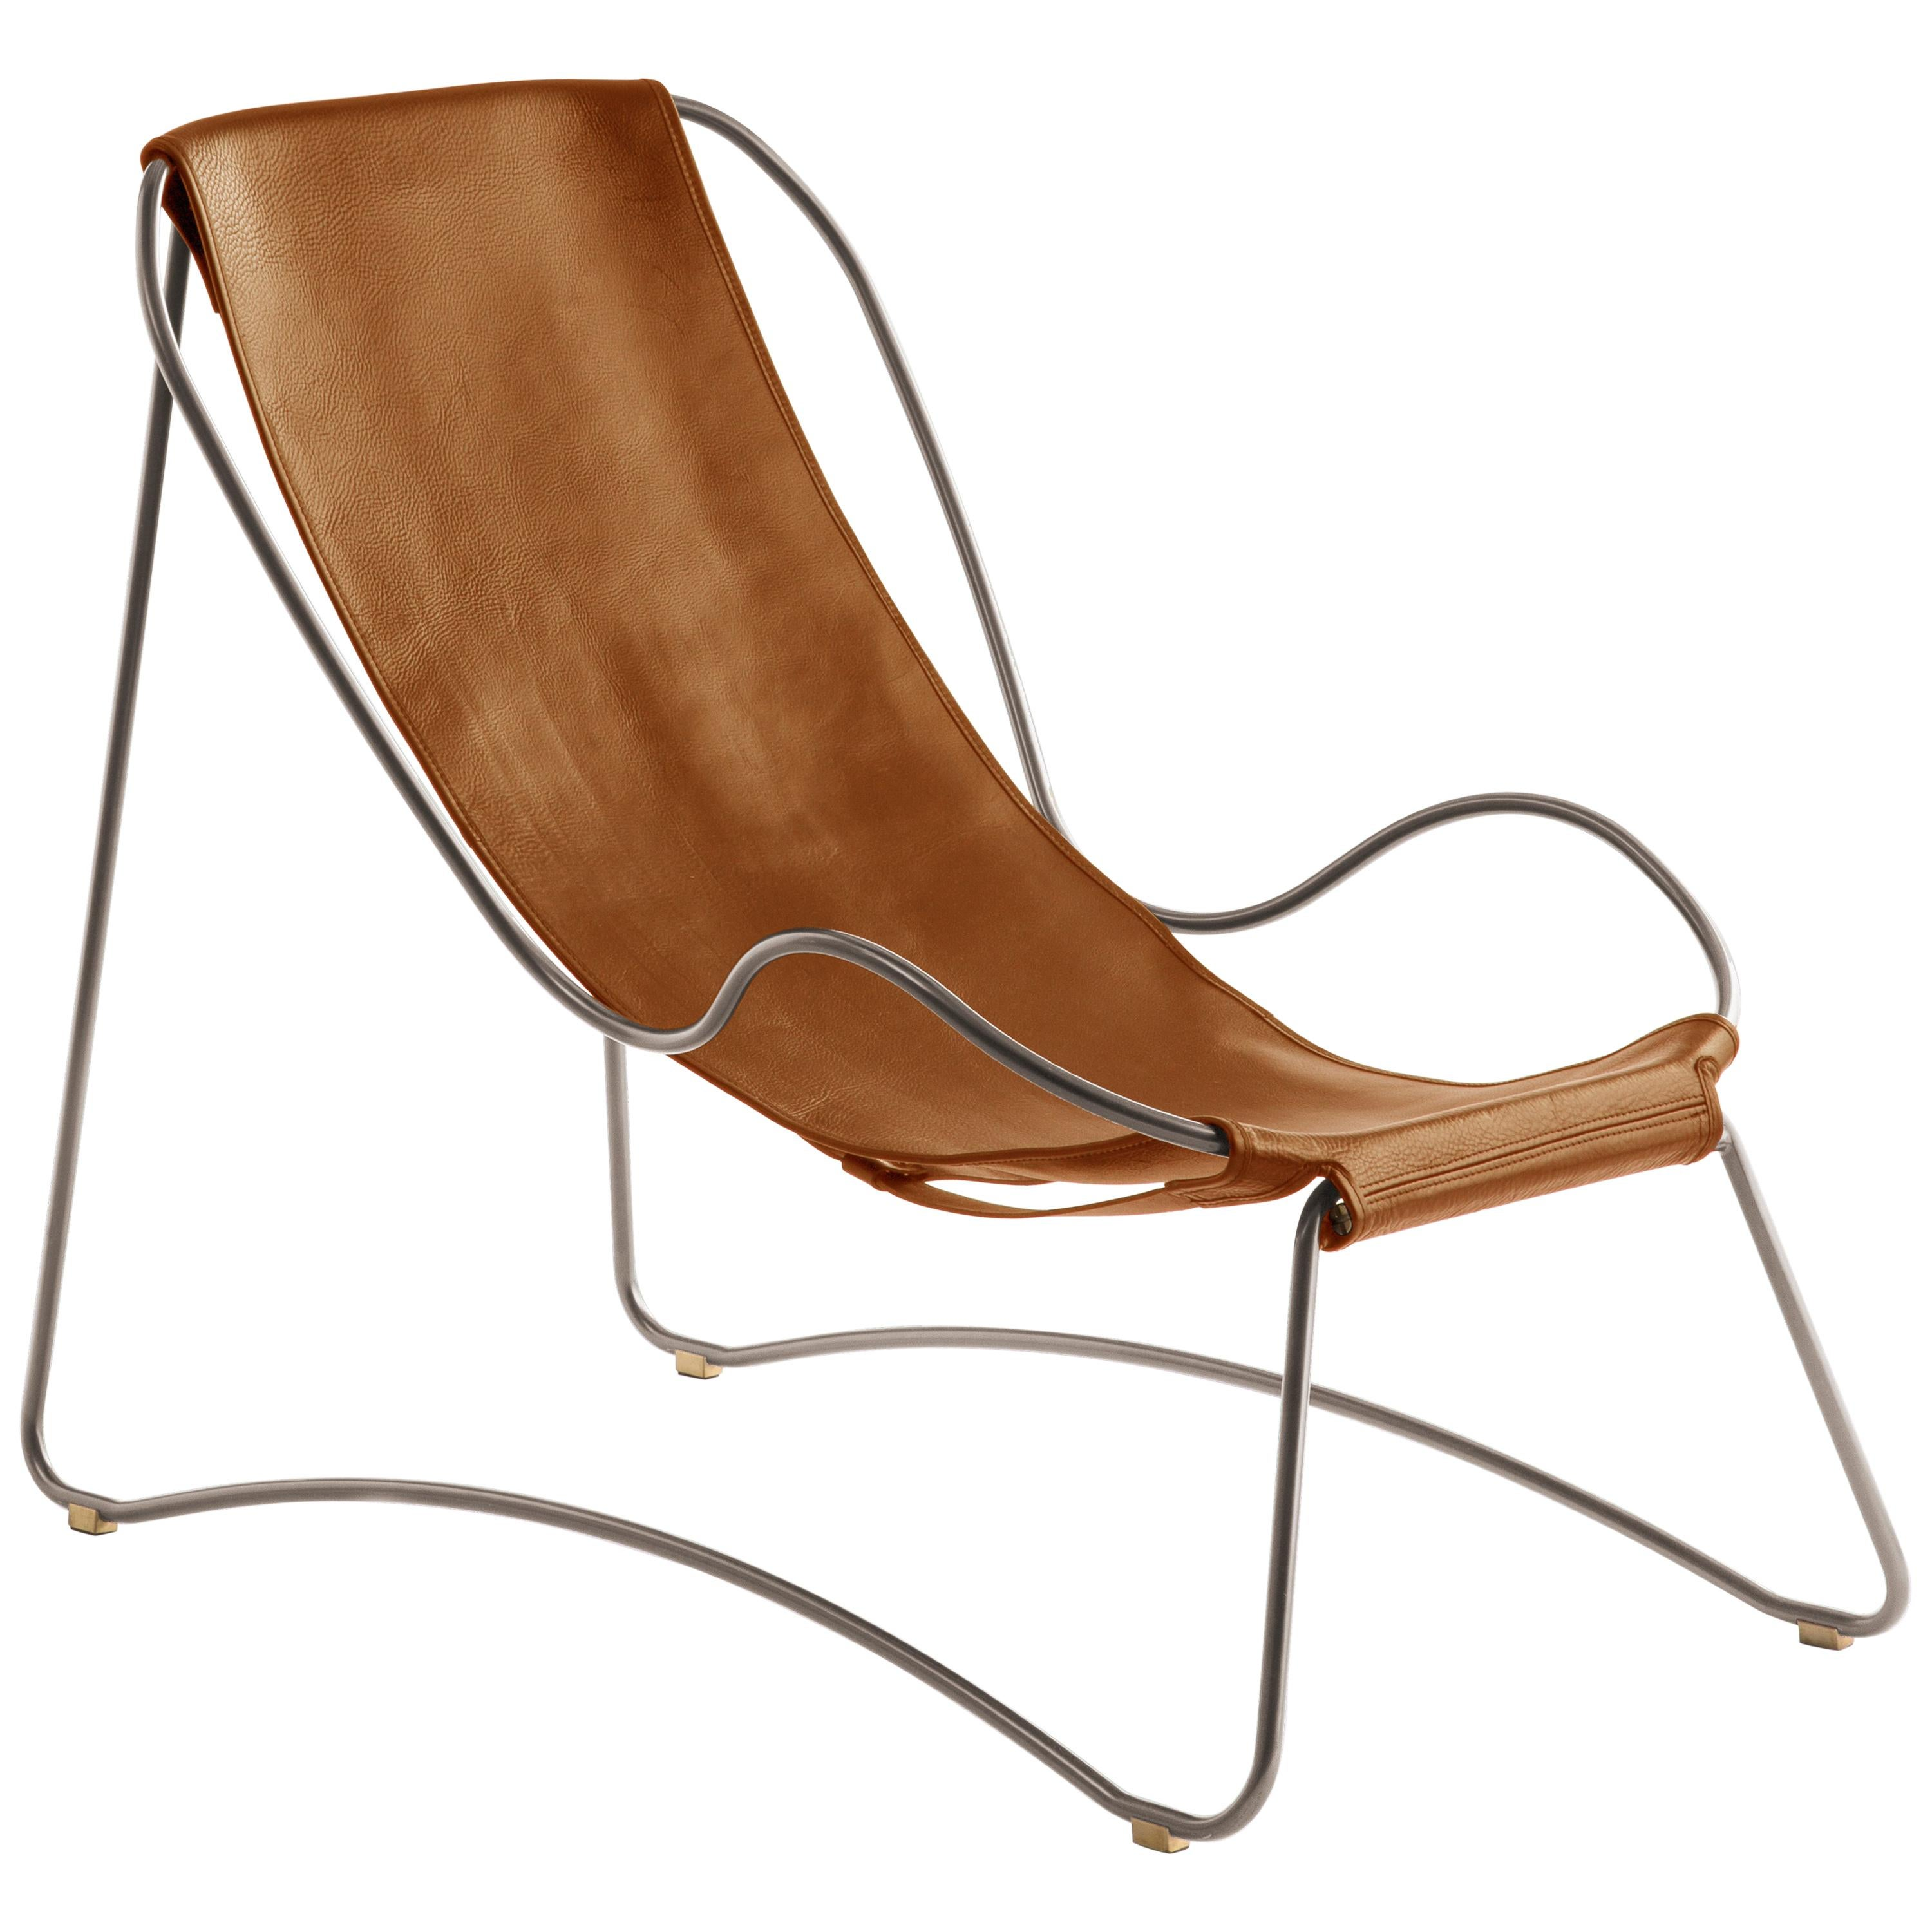 Chaise Longue, Old Silver Steel and Natural Tobacco Leather Modern Style